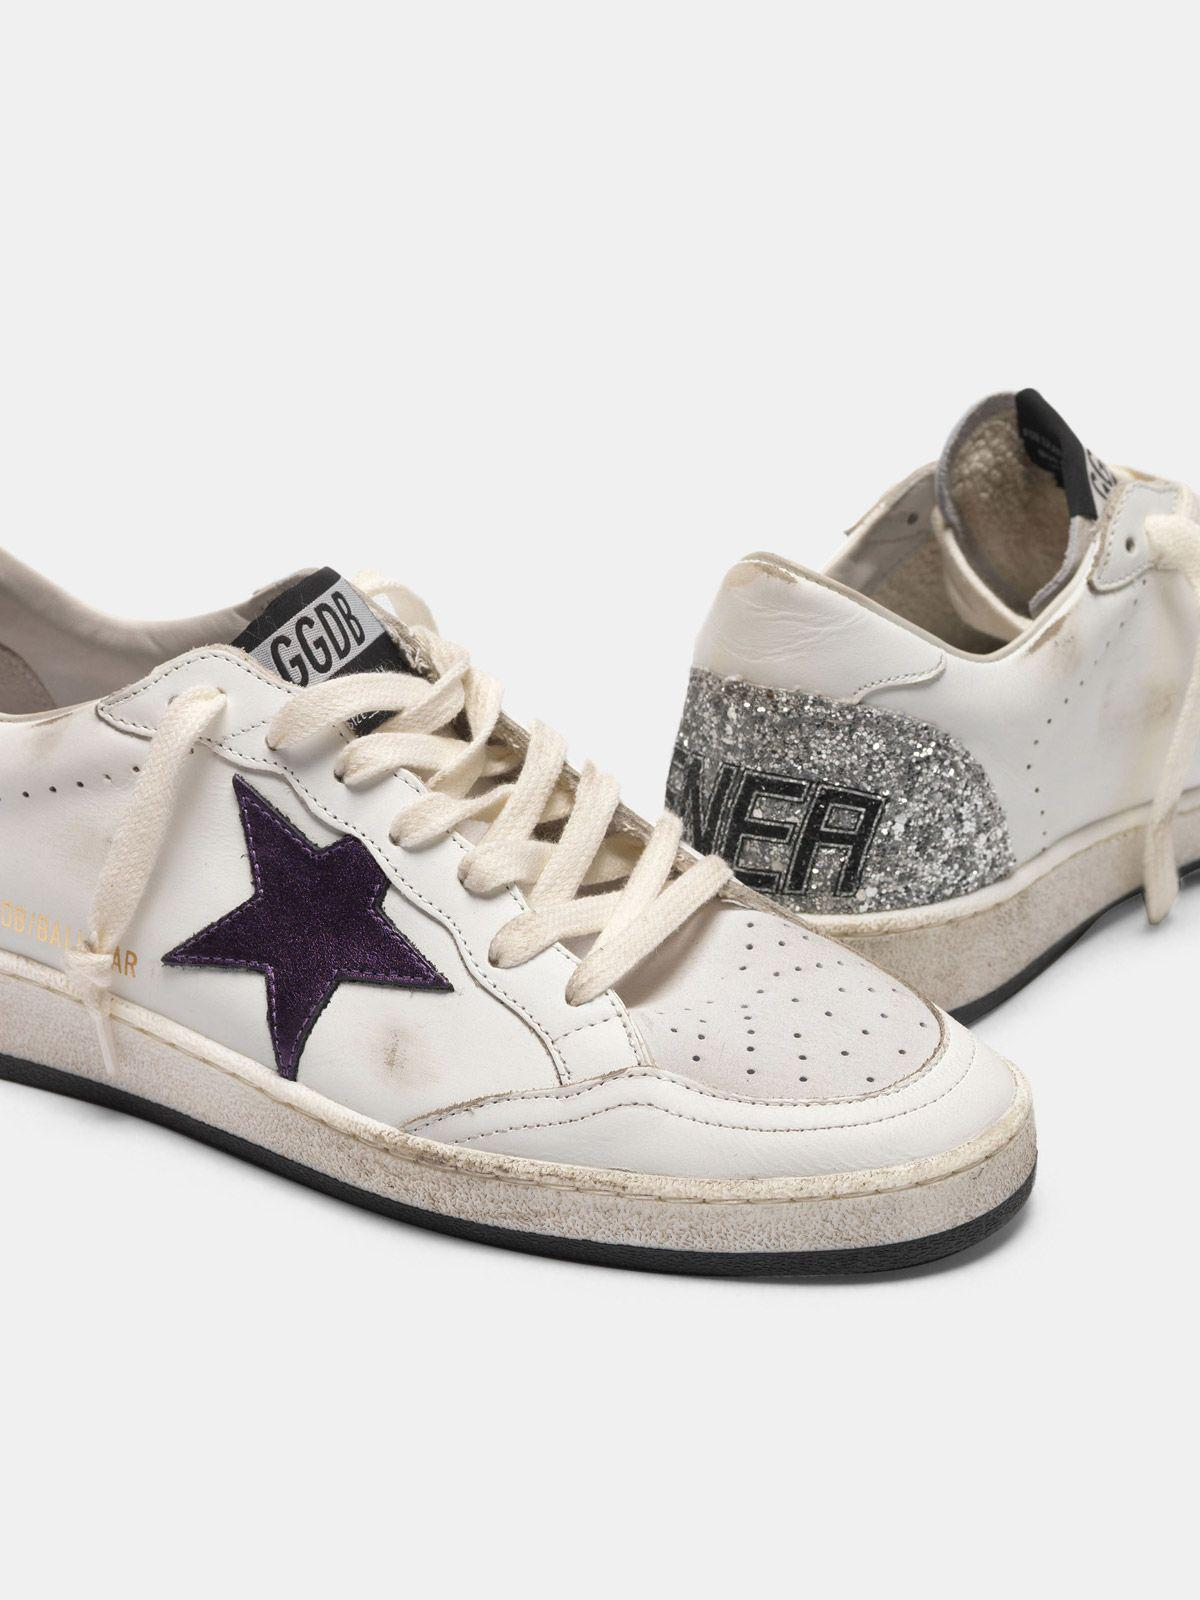 Ball Star sneakers with metallic purple star and glitter back 3